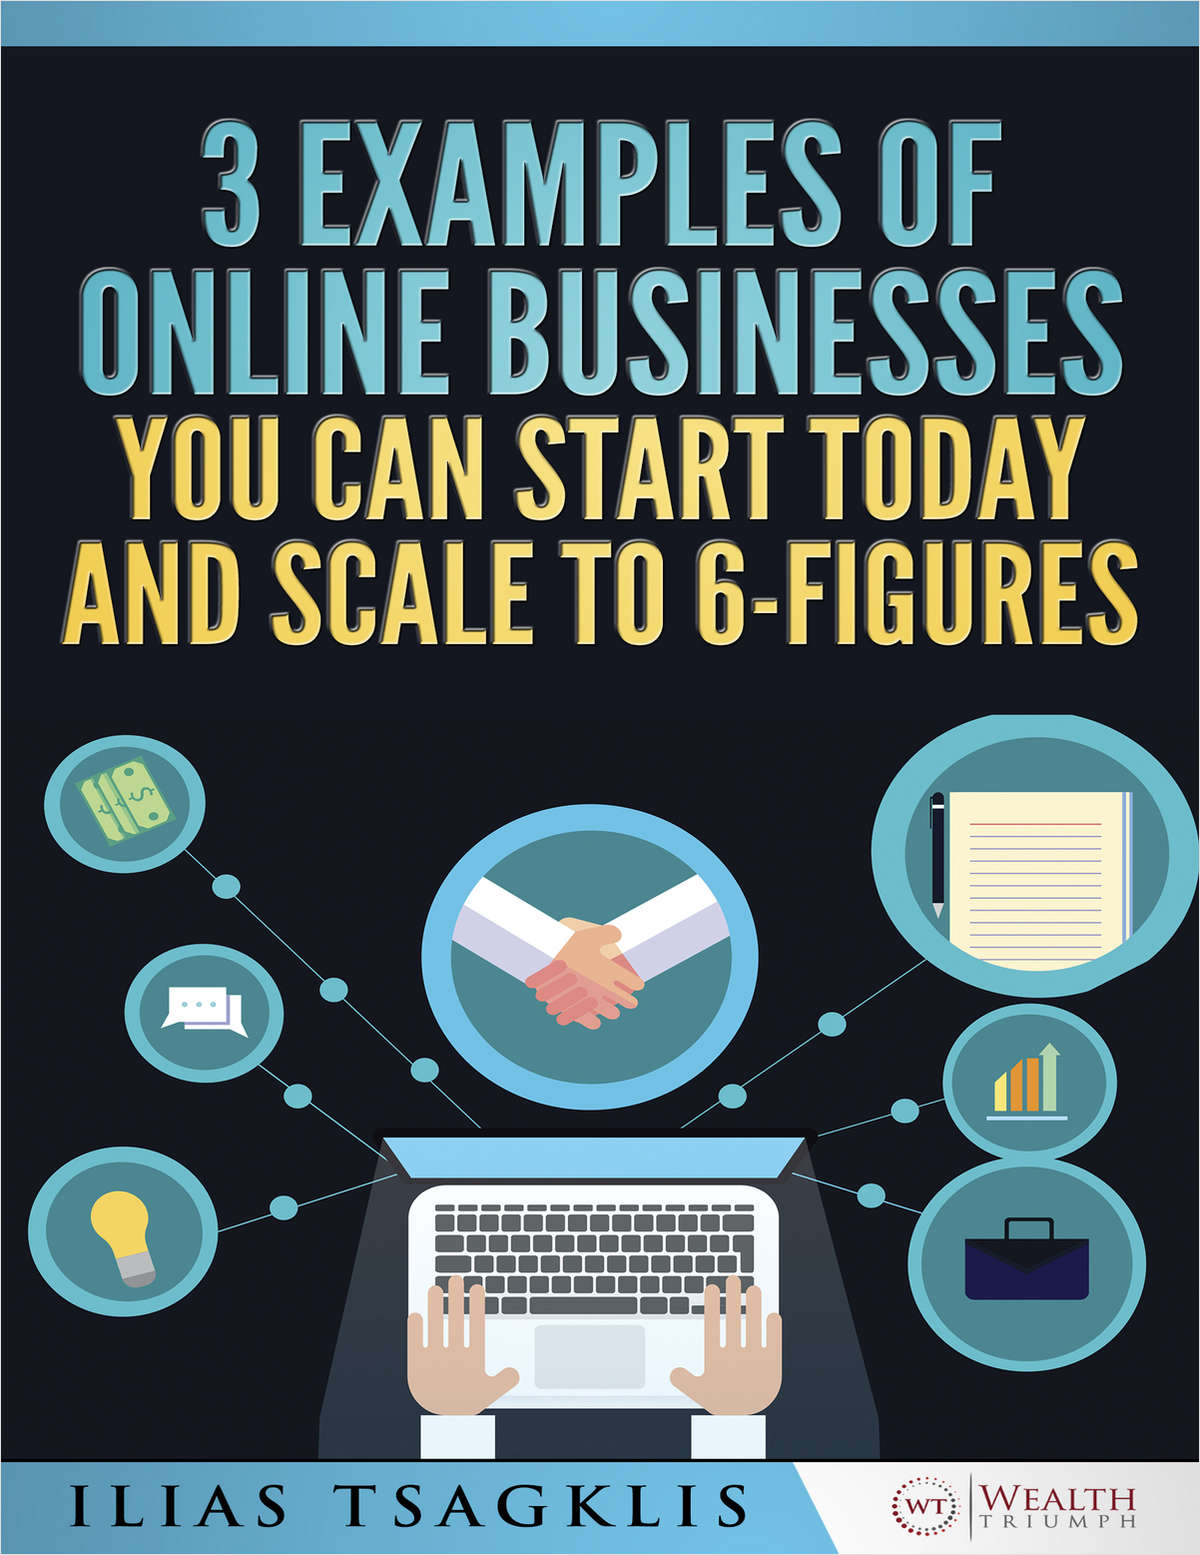 3 Examples of Online Businesses you can Start Today and Scale to 6-Figures